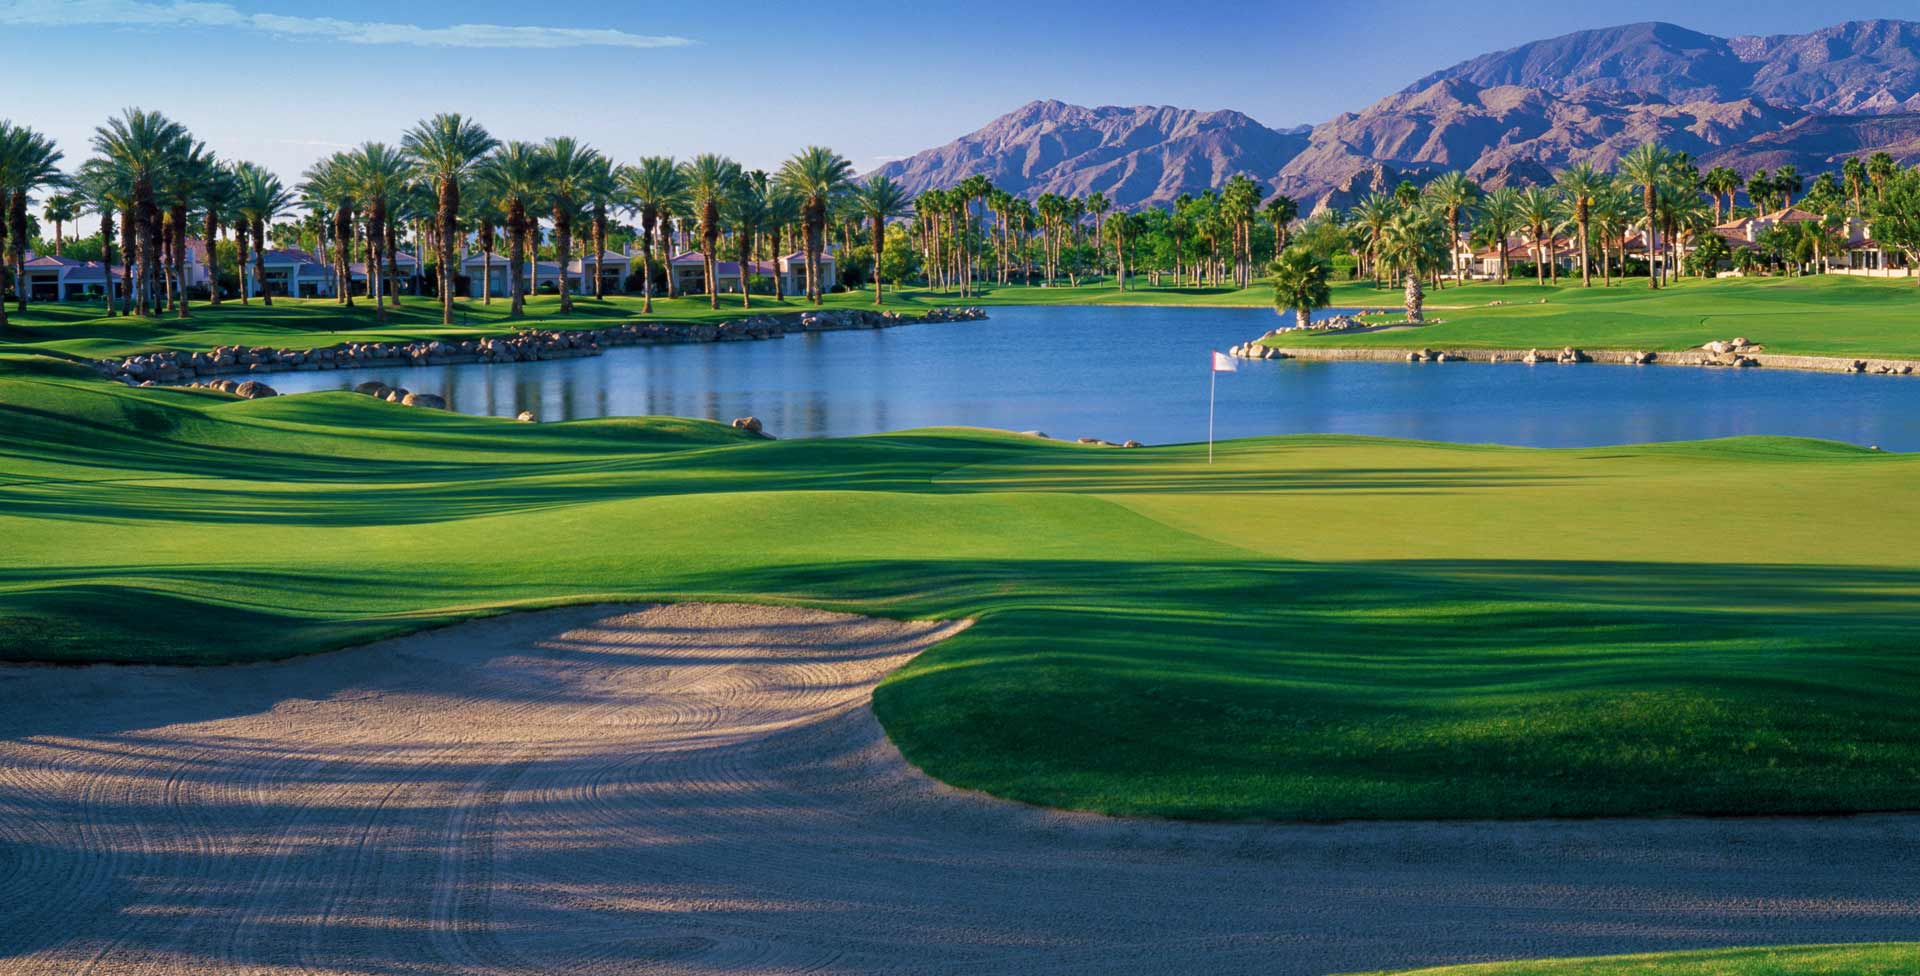 Nicklaus Private Course at PGA West